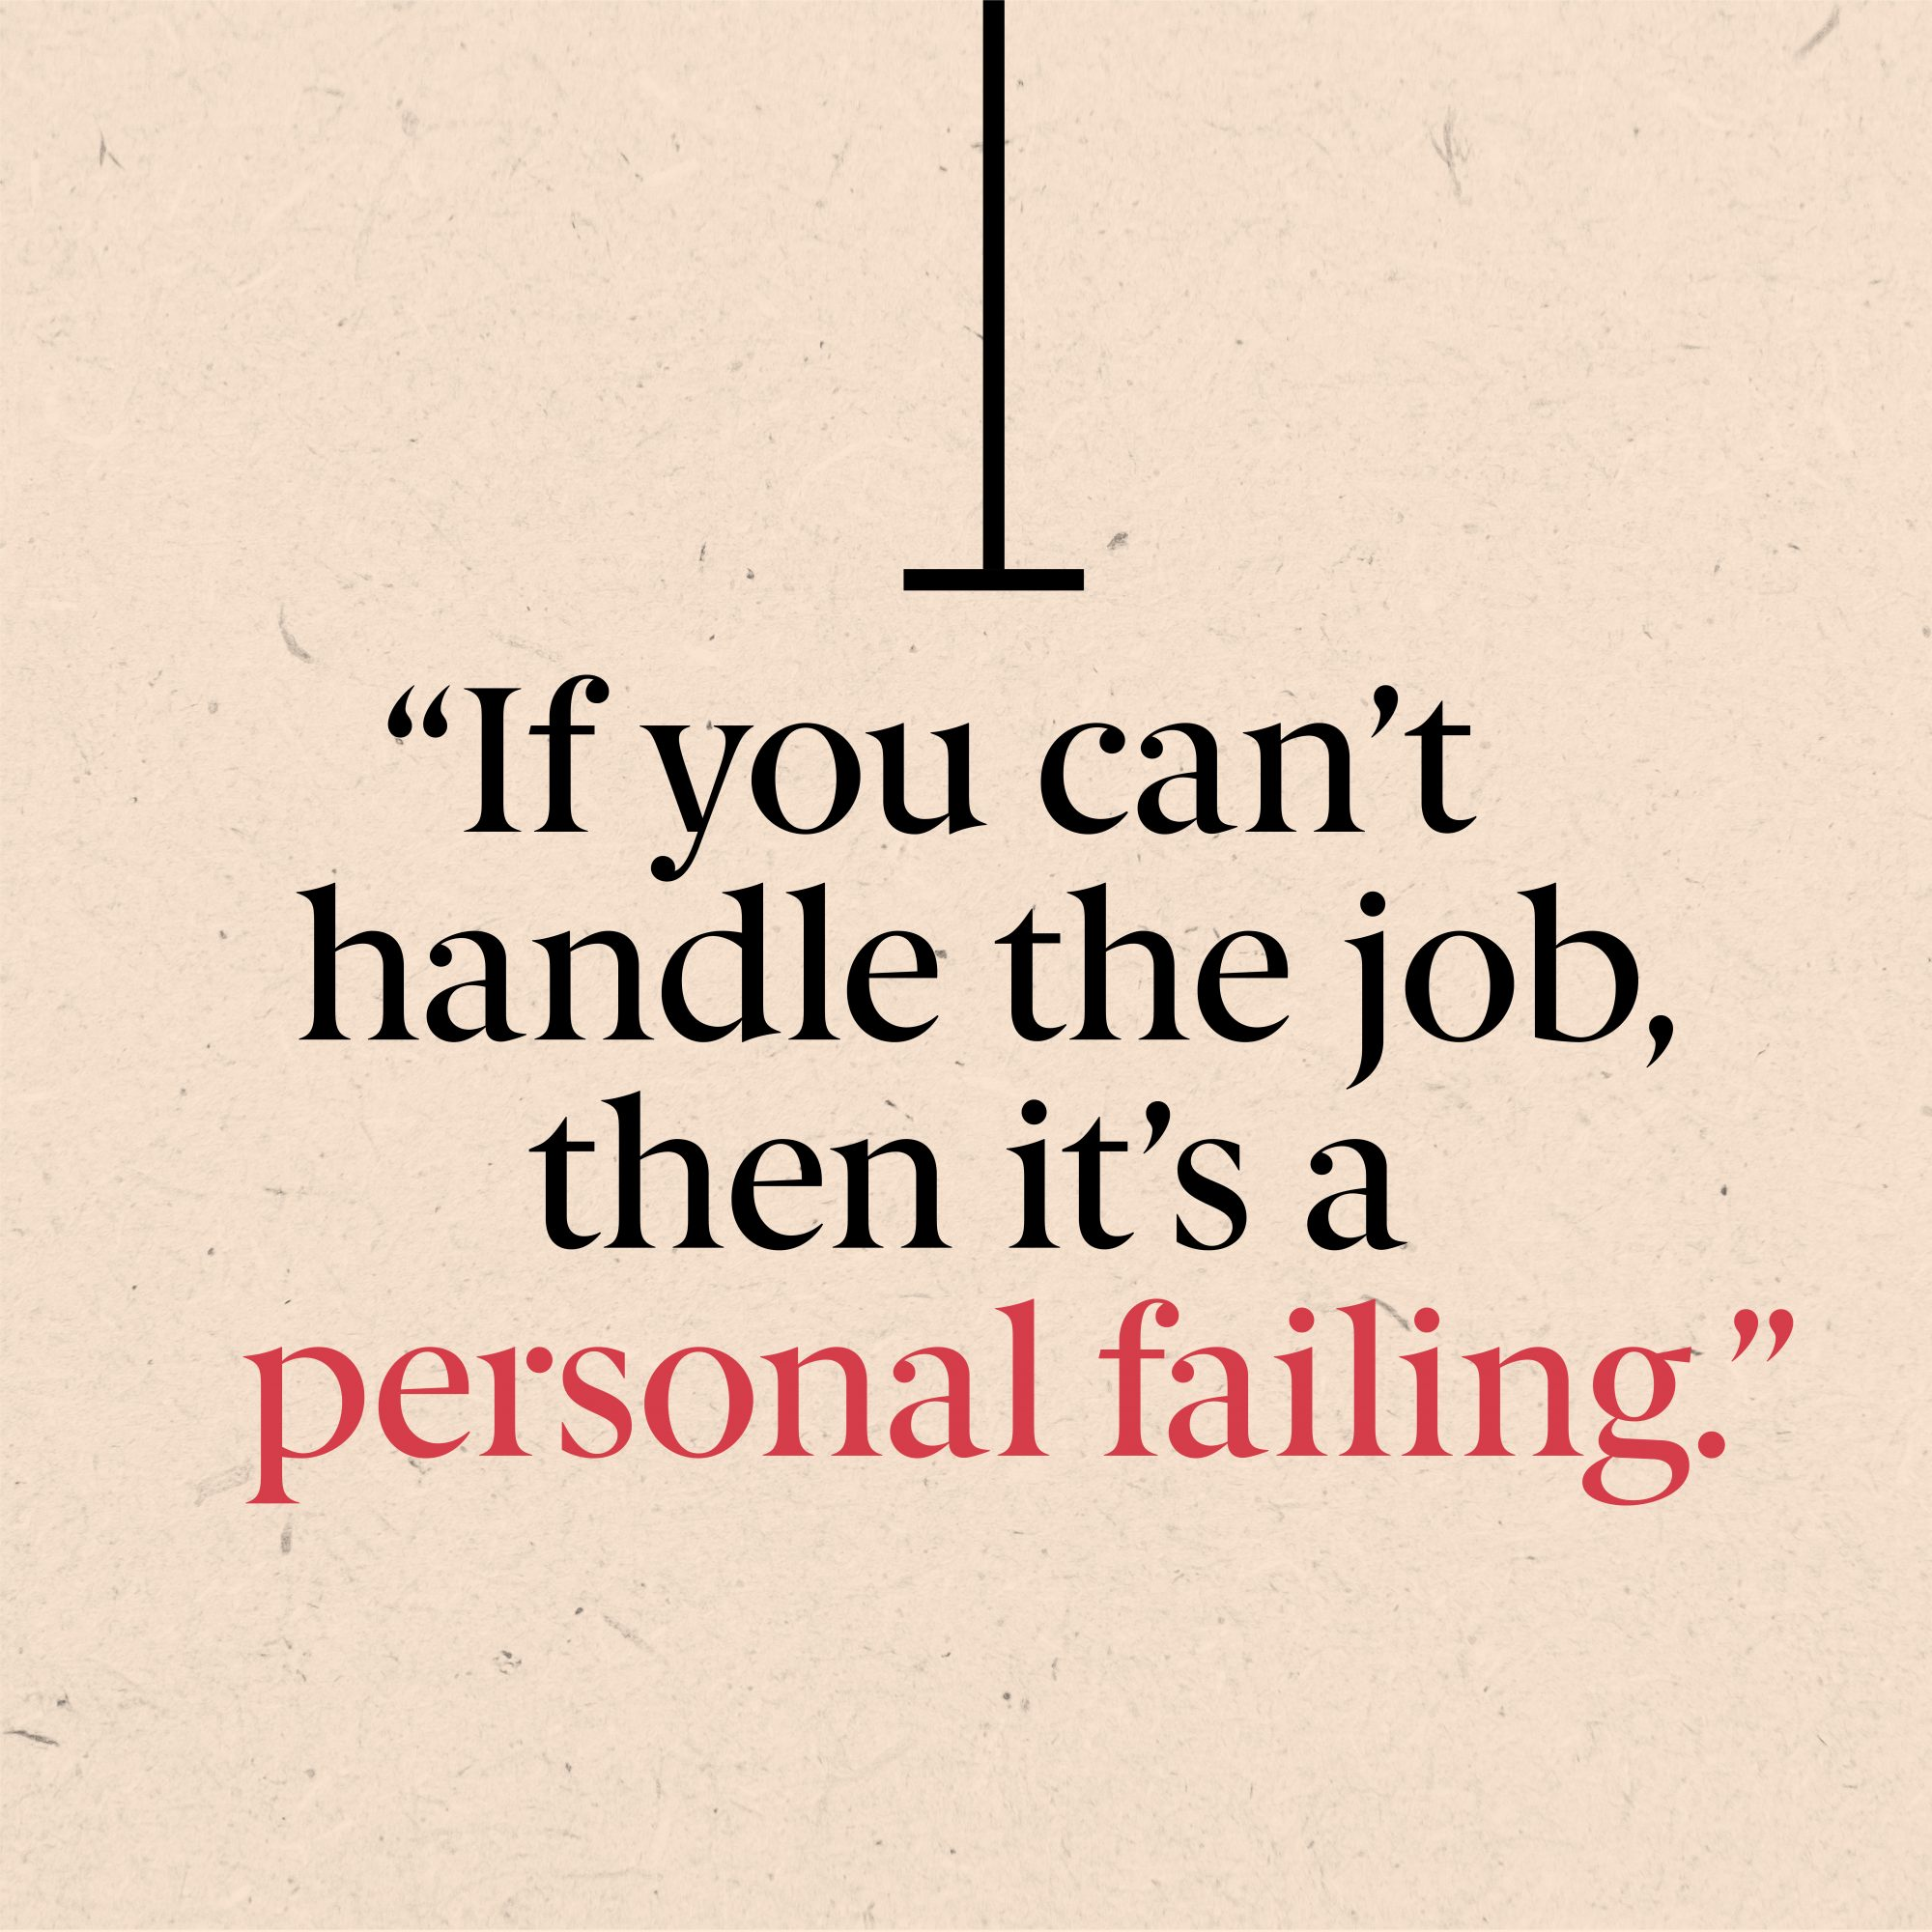 if you can't handle the job, then it's a personal failing